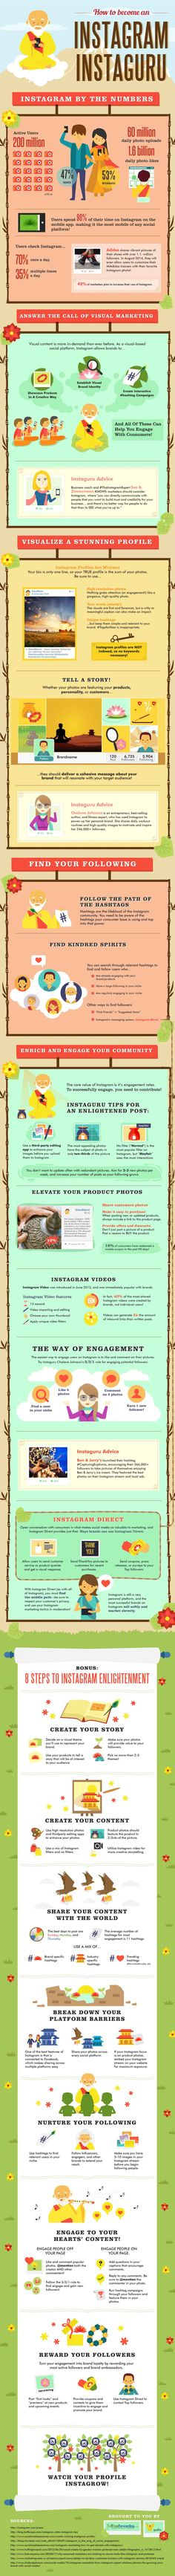 Marketing visuel : communiquer sur instagram #Infographic #SocialMedia #Instagram